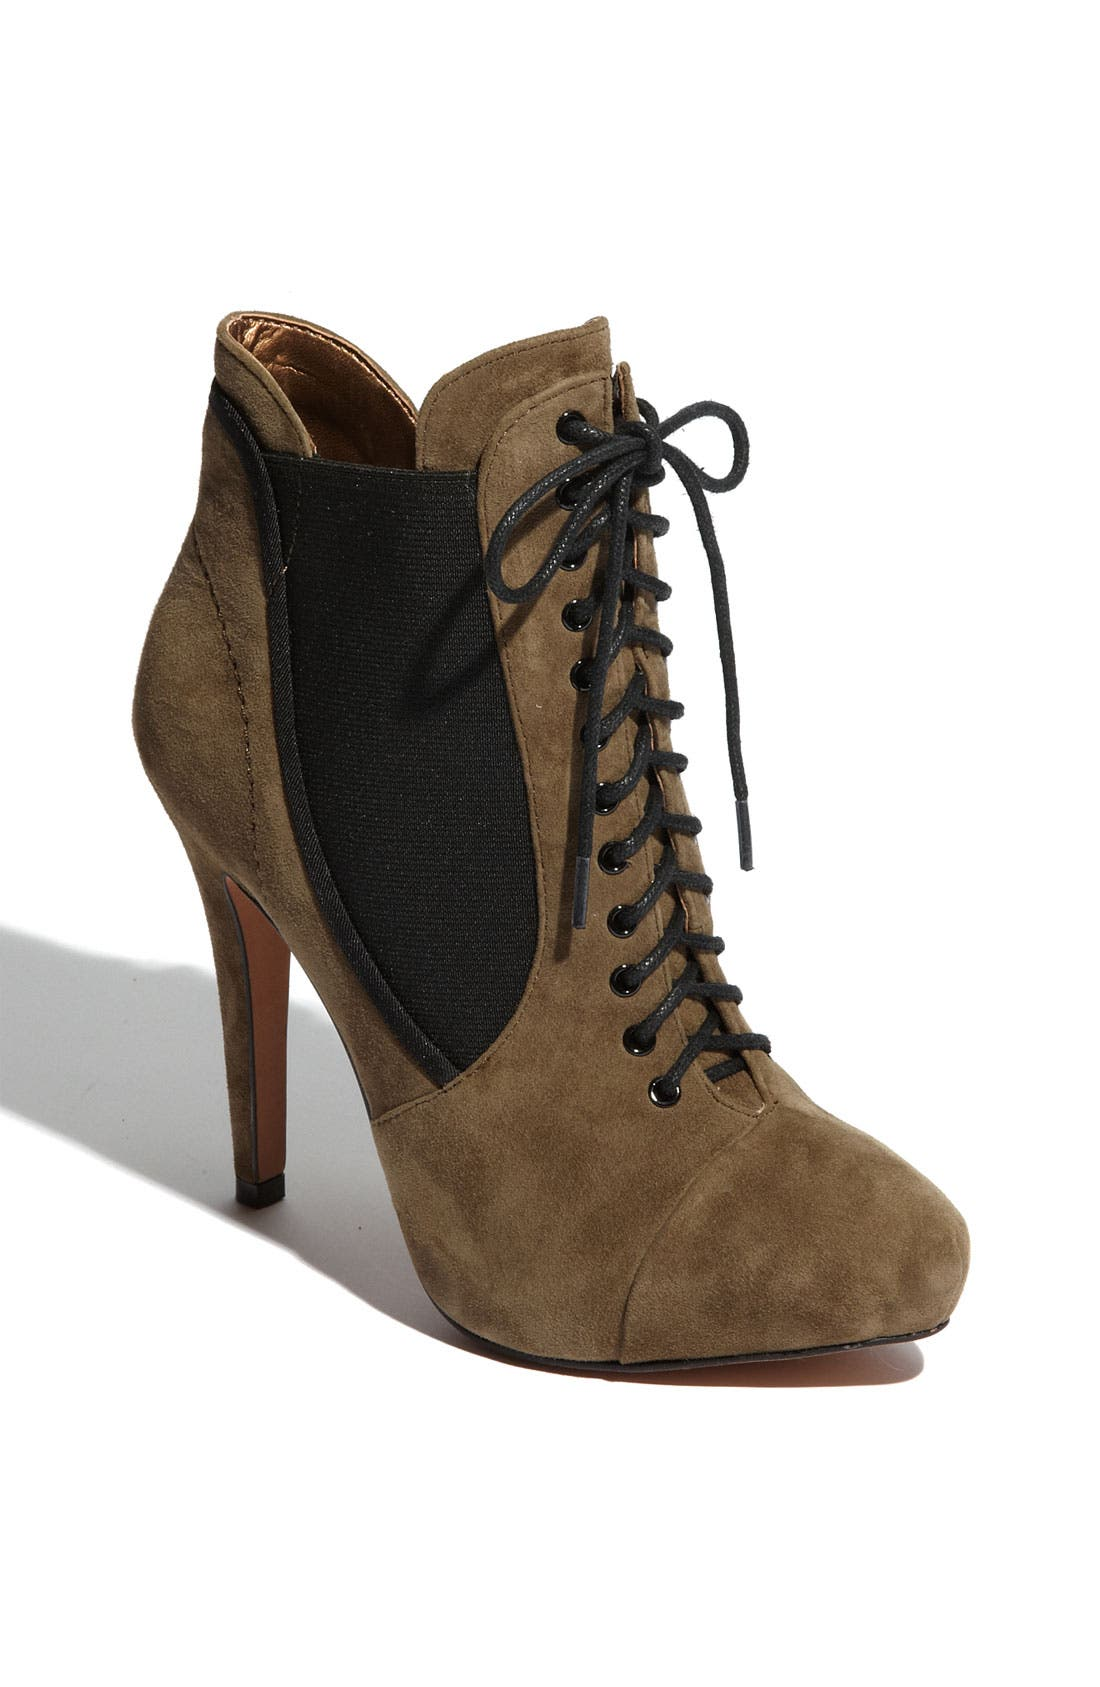 Alternate Image 1 Selected - Sam Edelman 'Rowin' Bootie